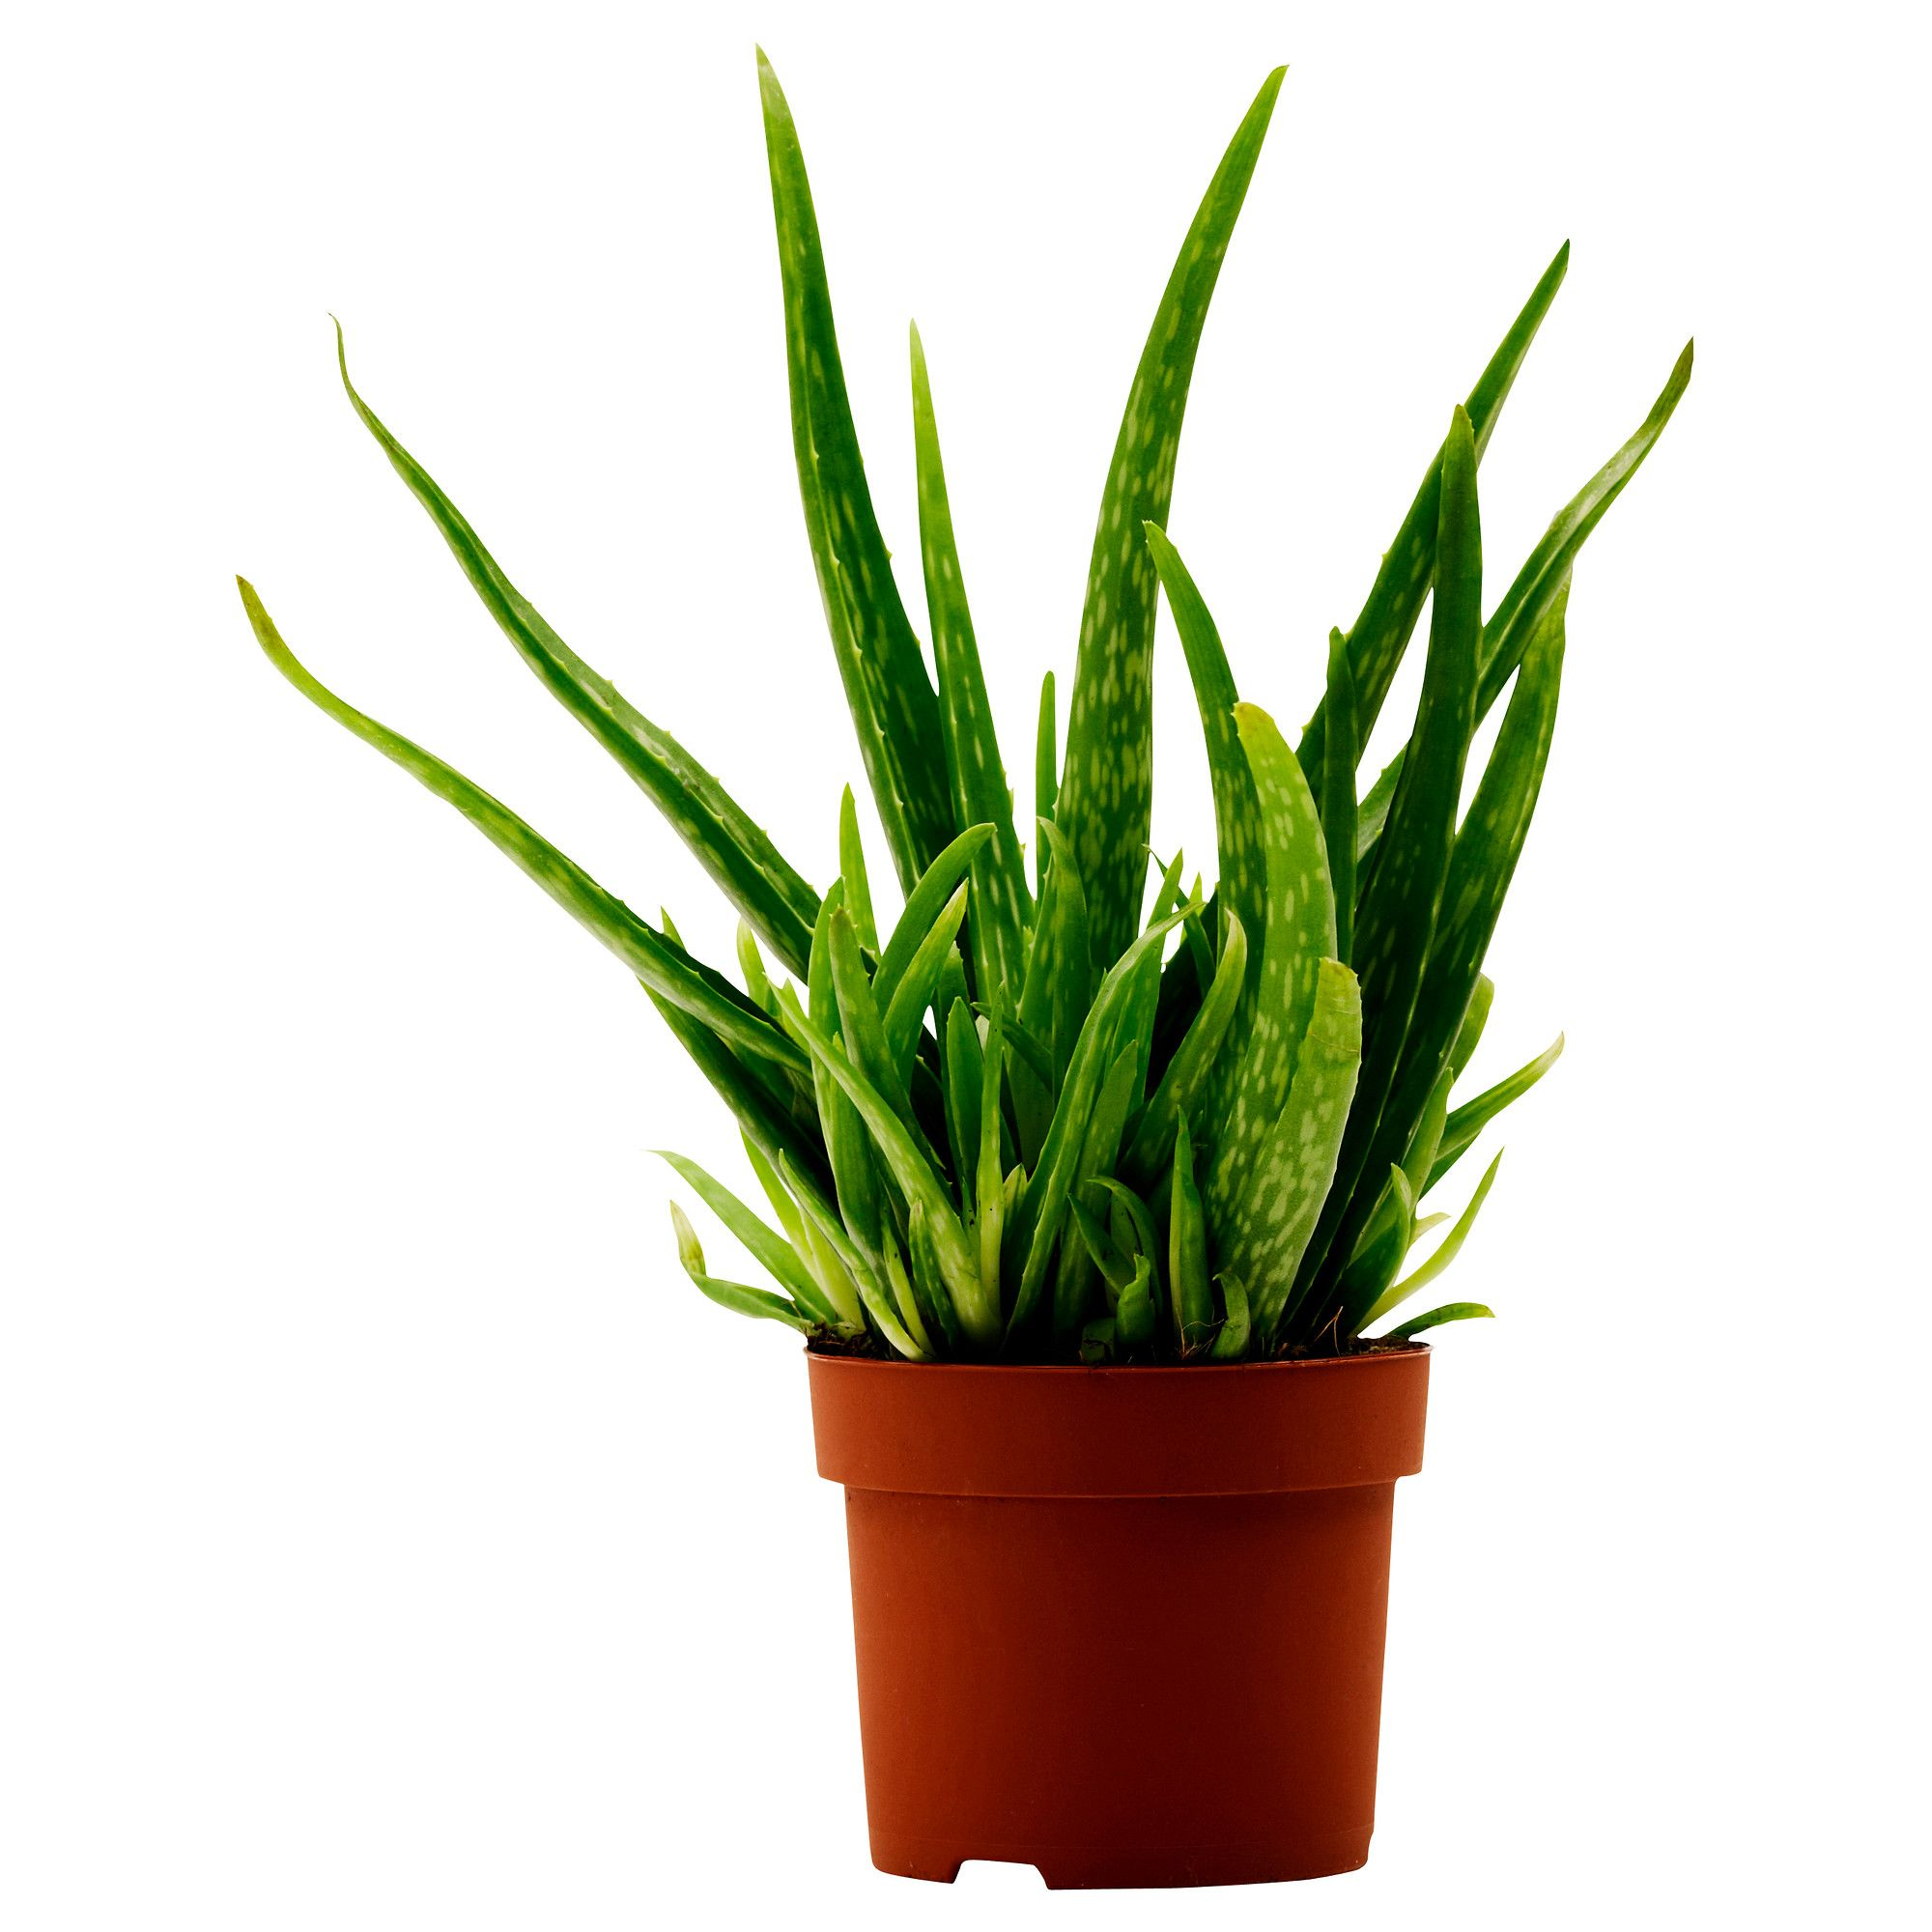 aloe vera potted plant | plants, ikea house and ikea shopping